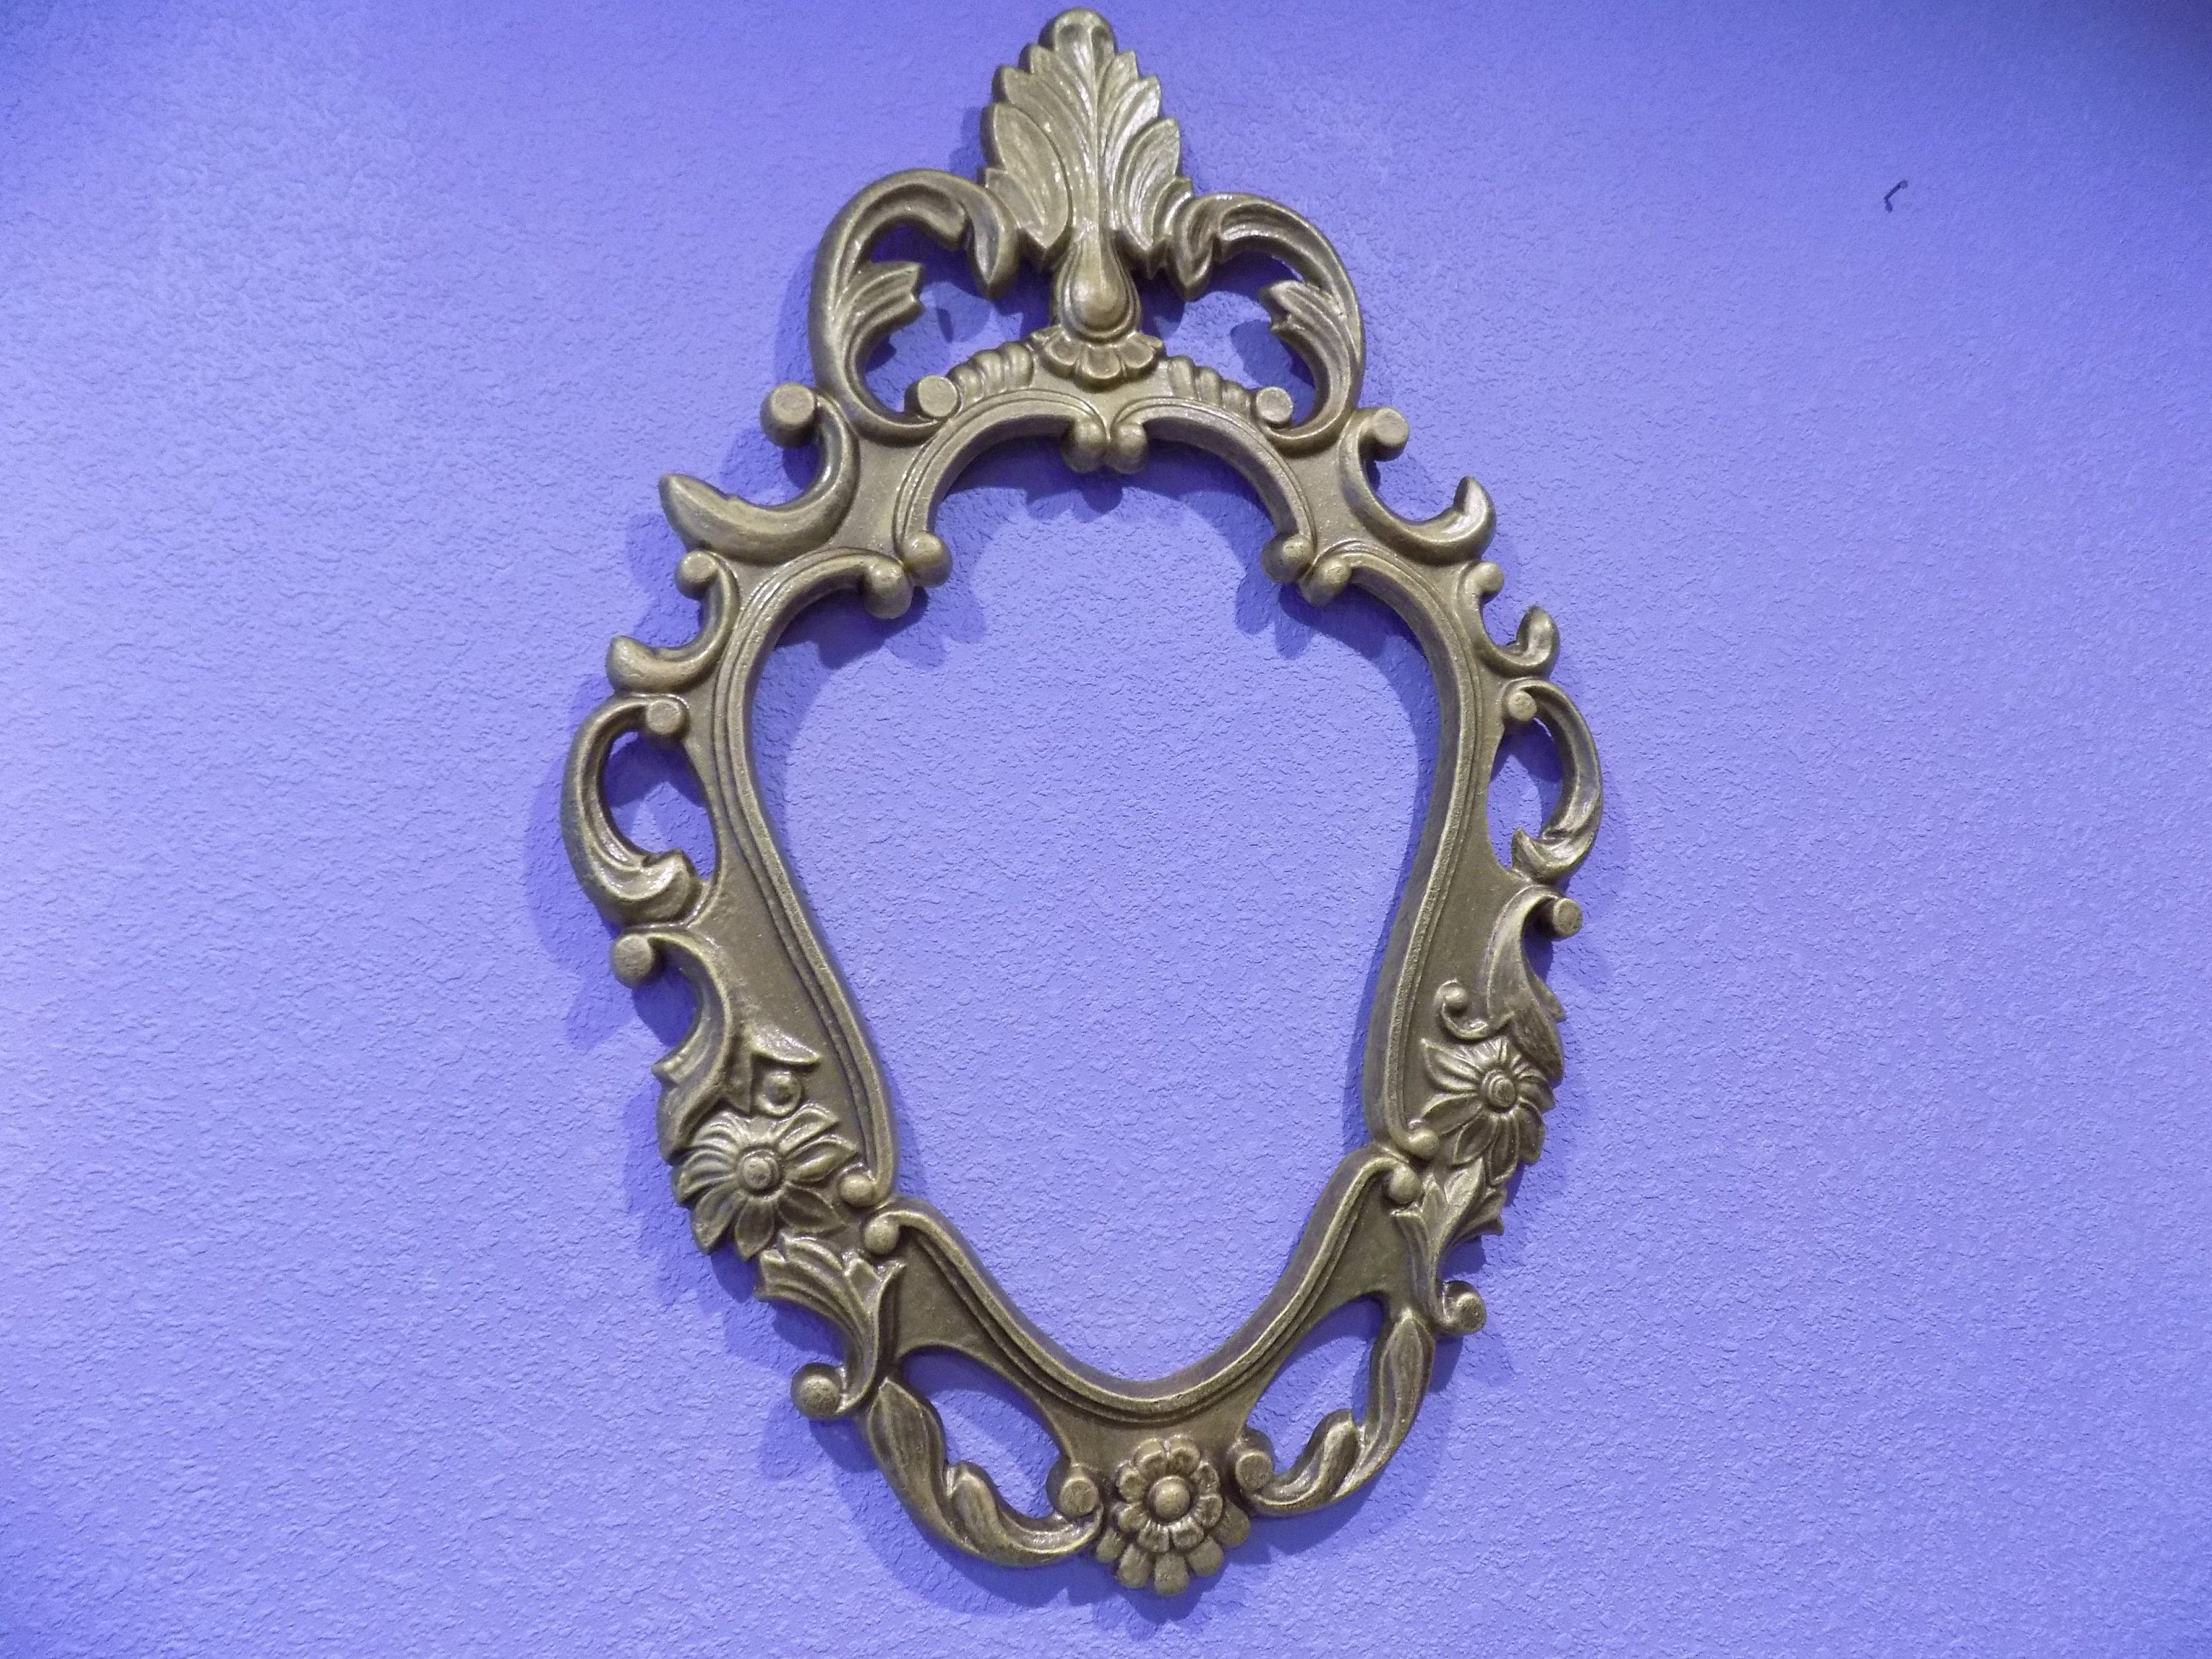 5b73c3be784 Large Ornate Oval Picture Frames - Picture Frame Ideas